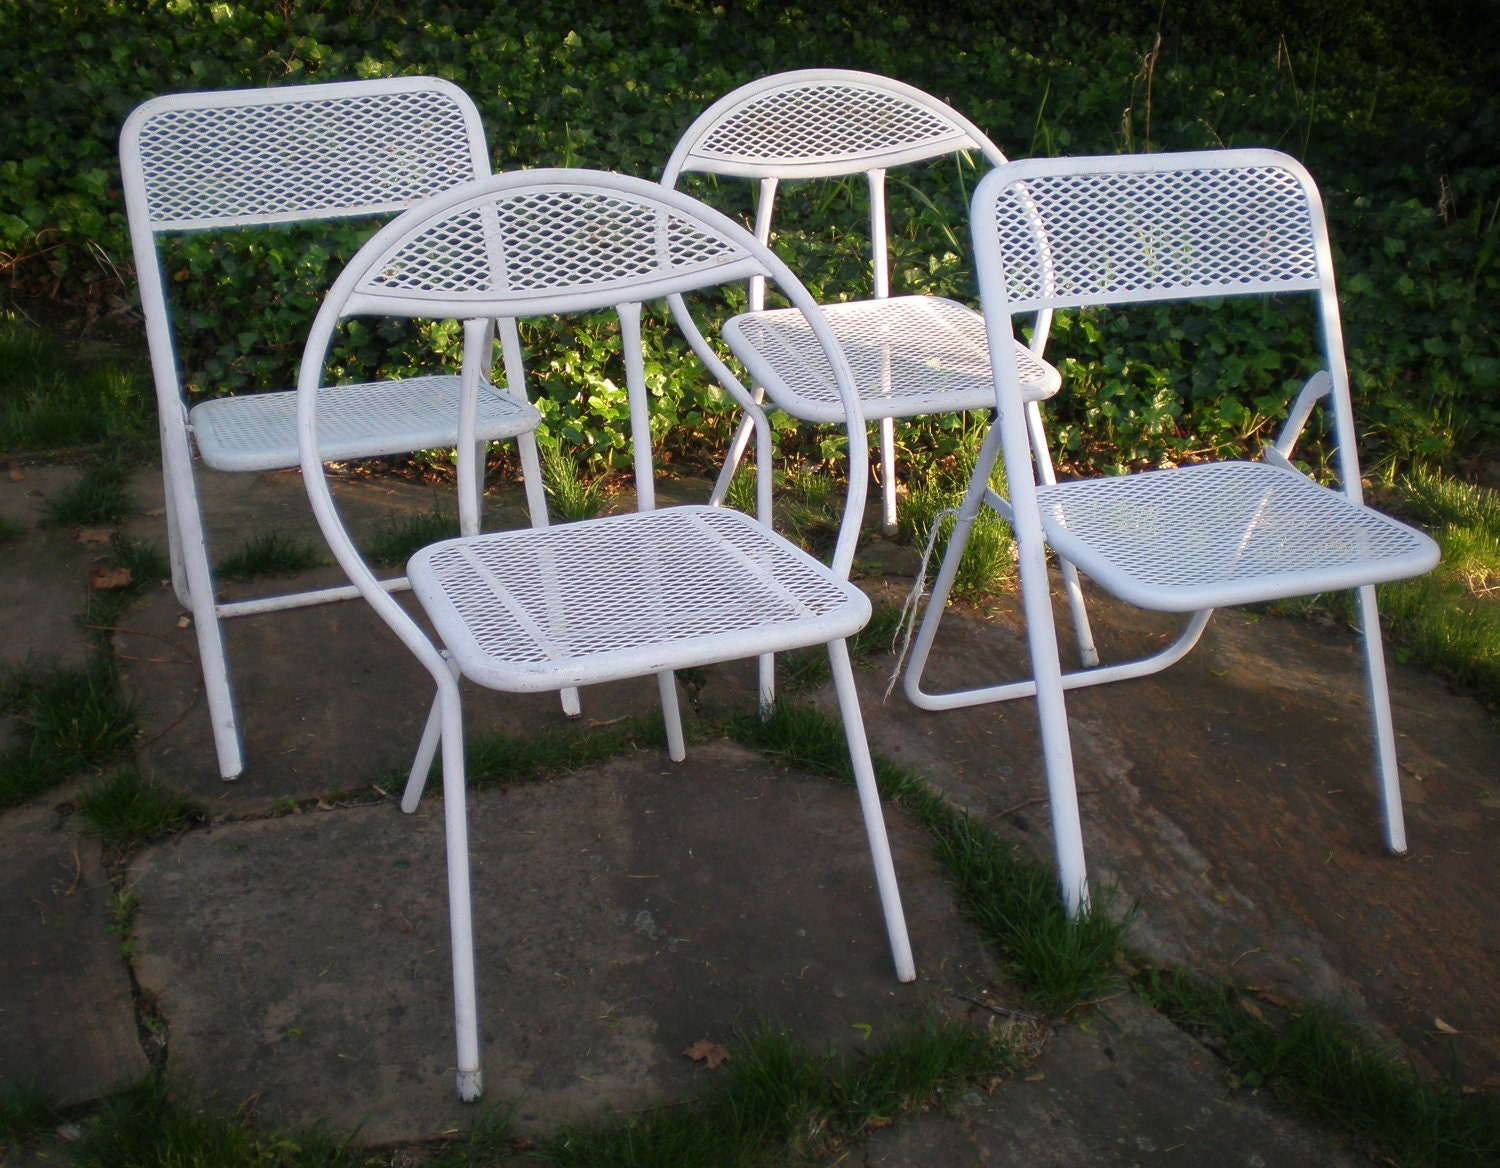 Vintage folding lawn chairs -  Zoom